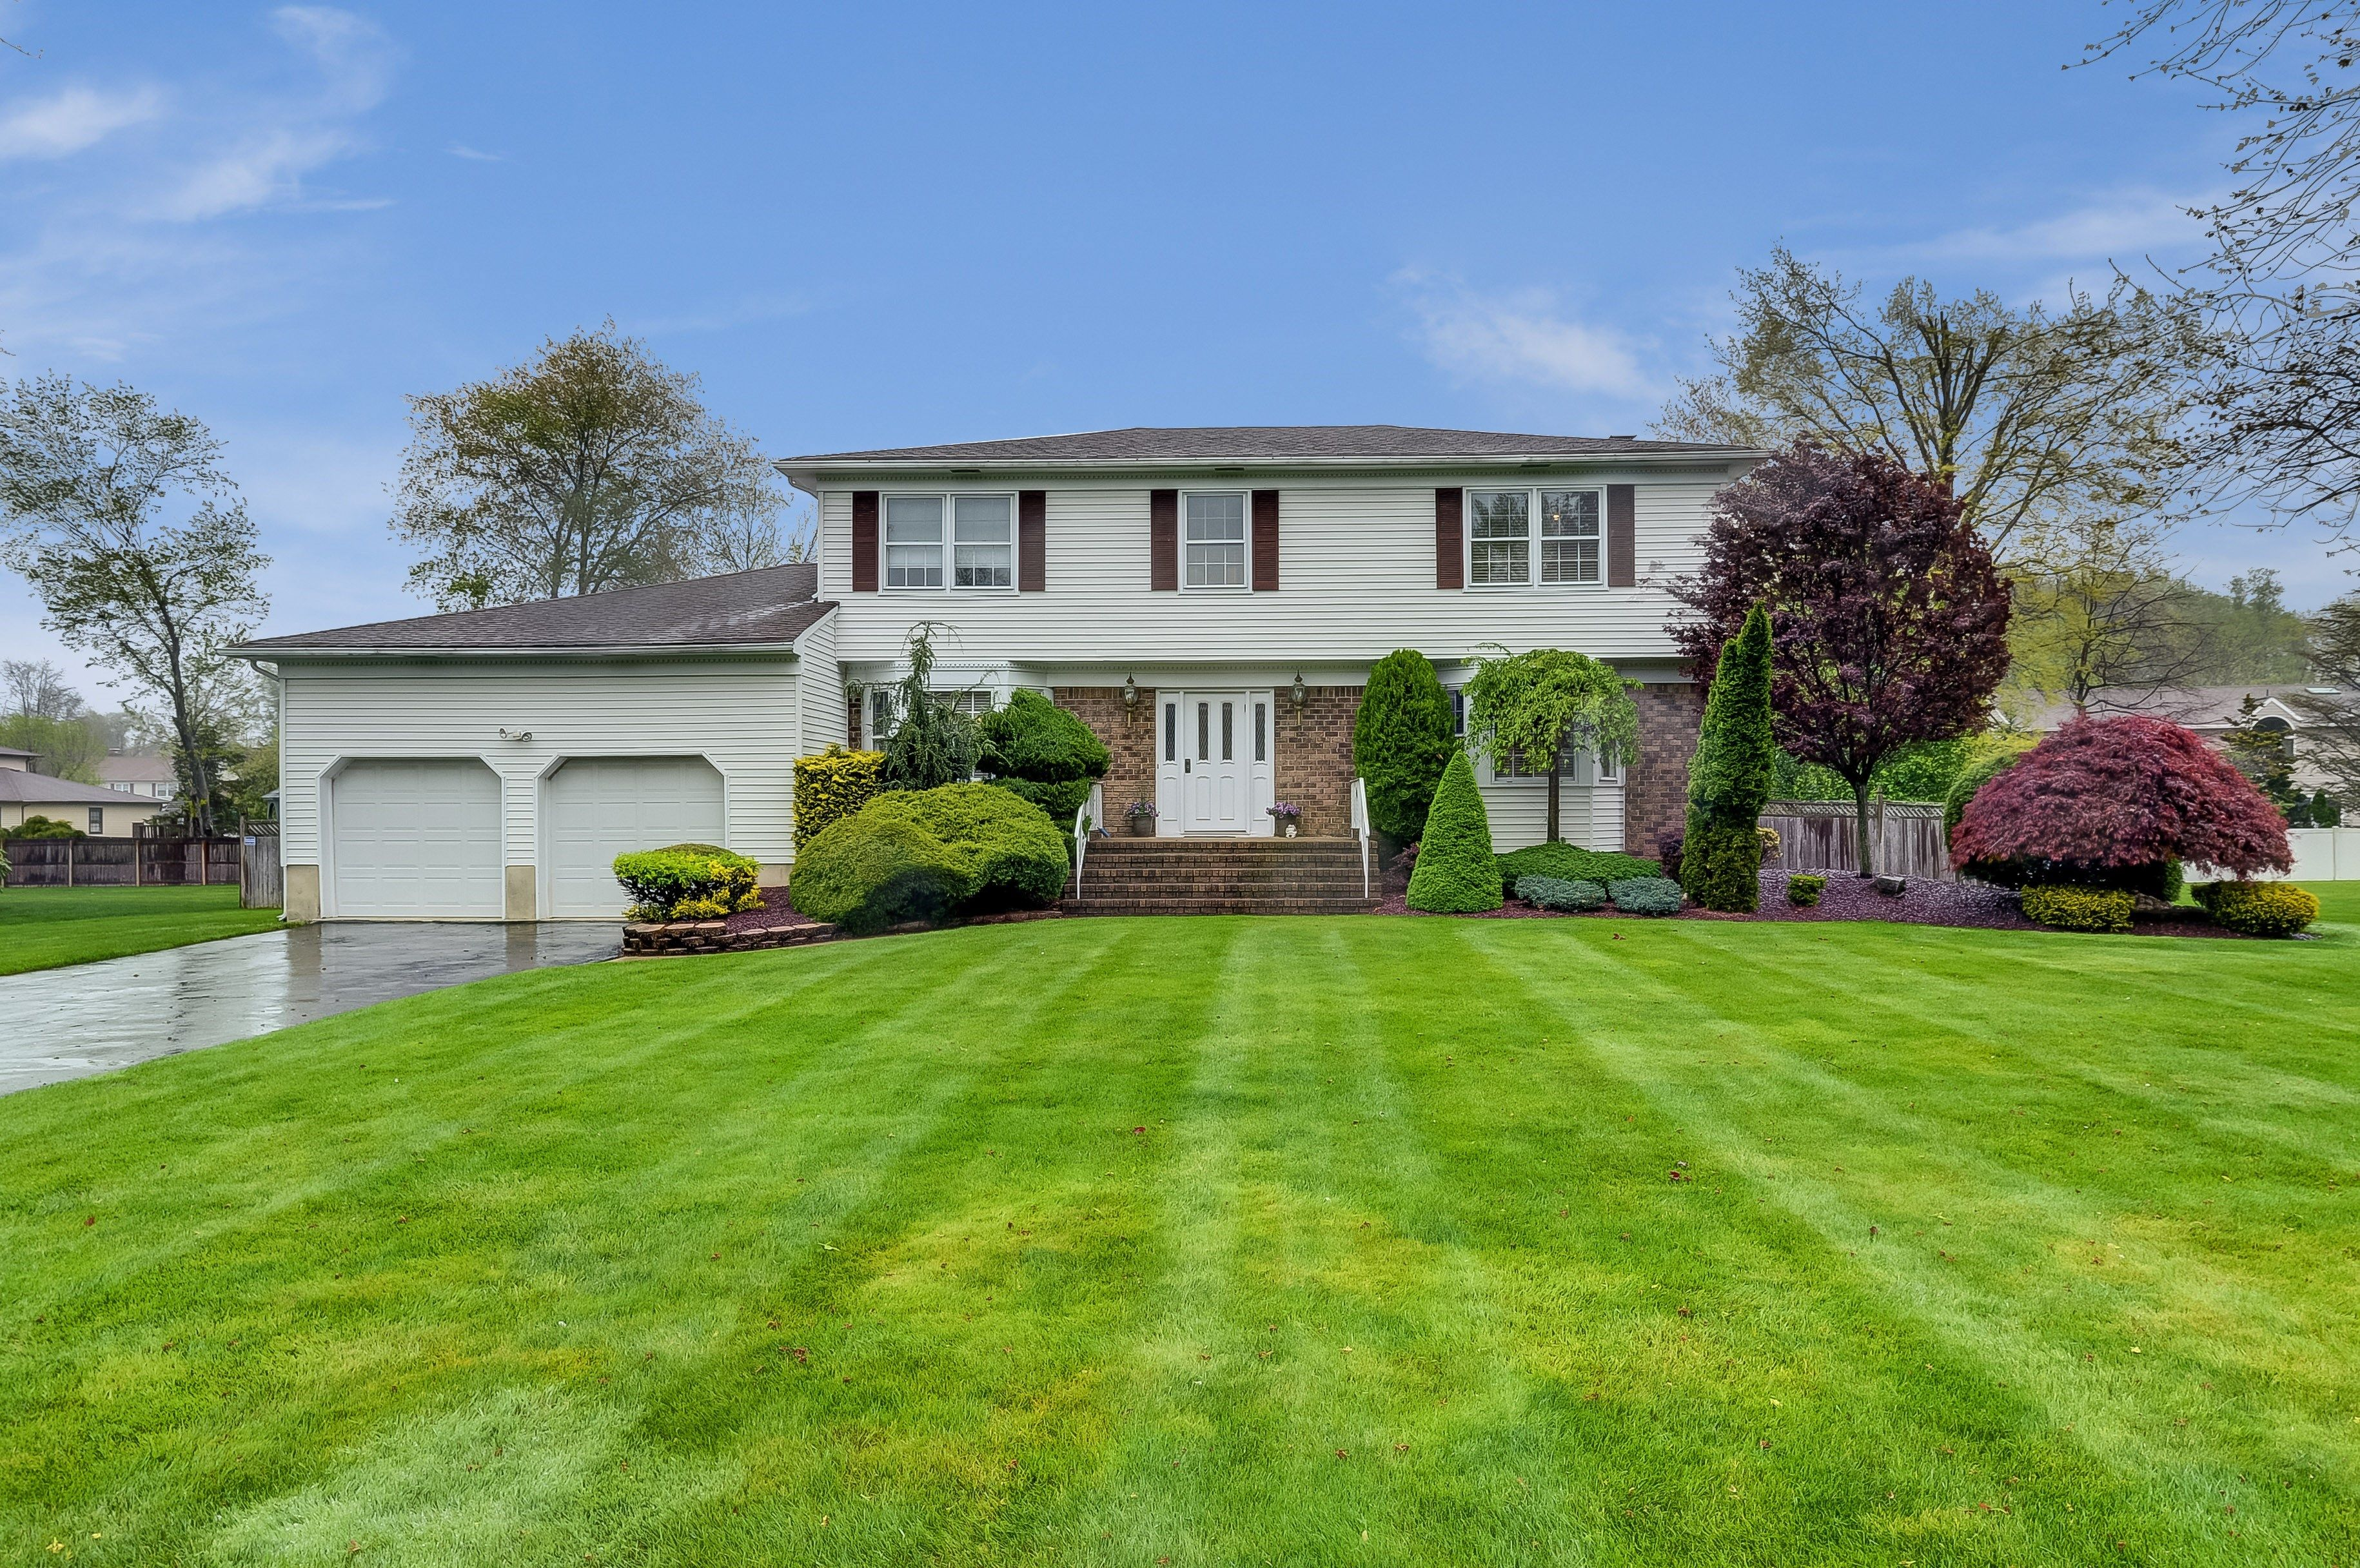 New Listing 57 Thomas Drive Manalapan Nj House Styles Mansions Home And Family